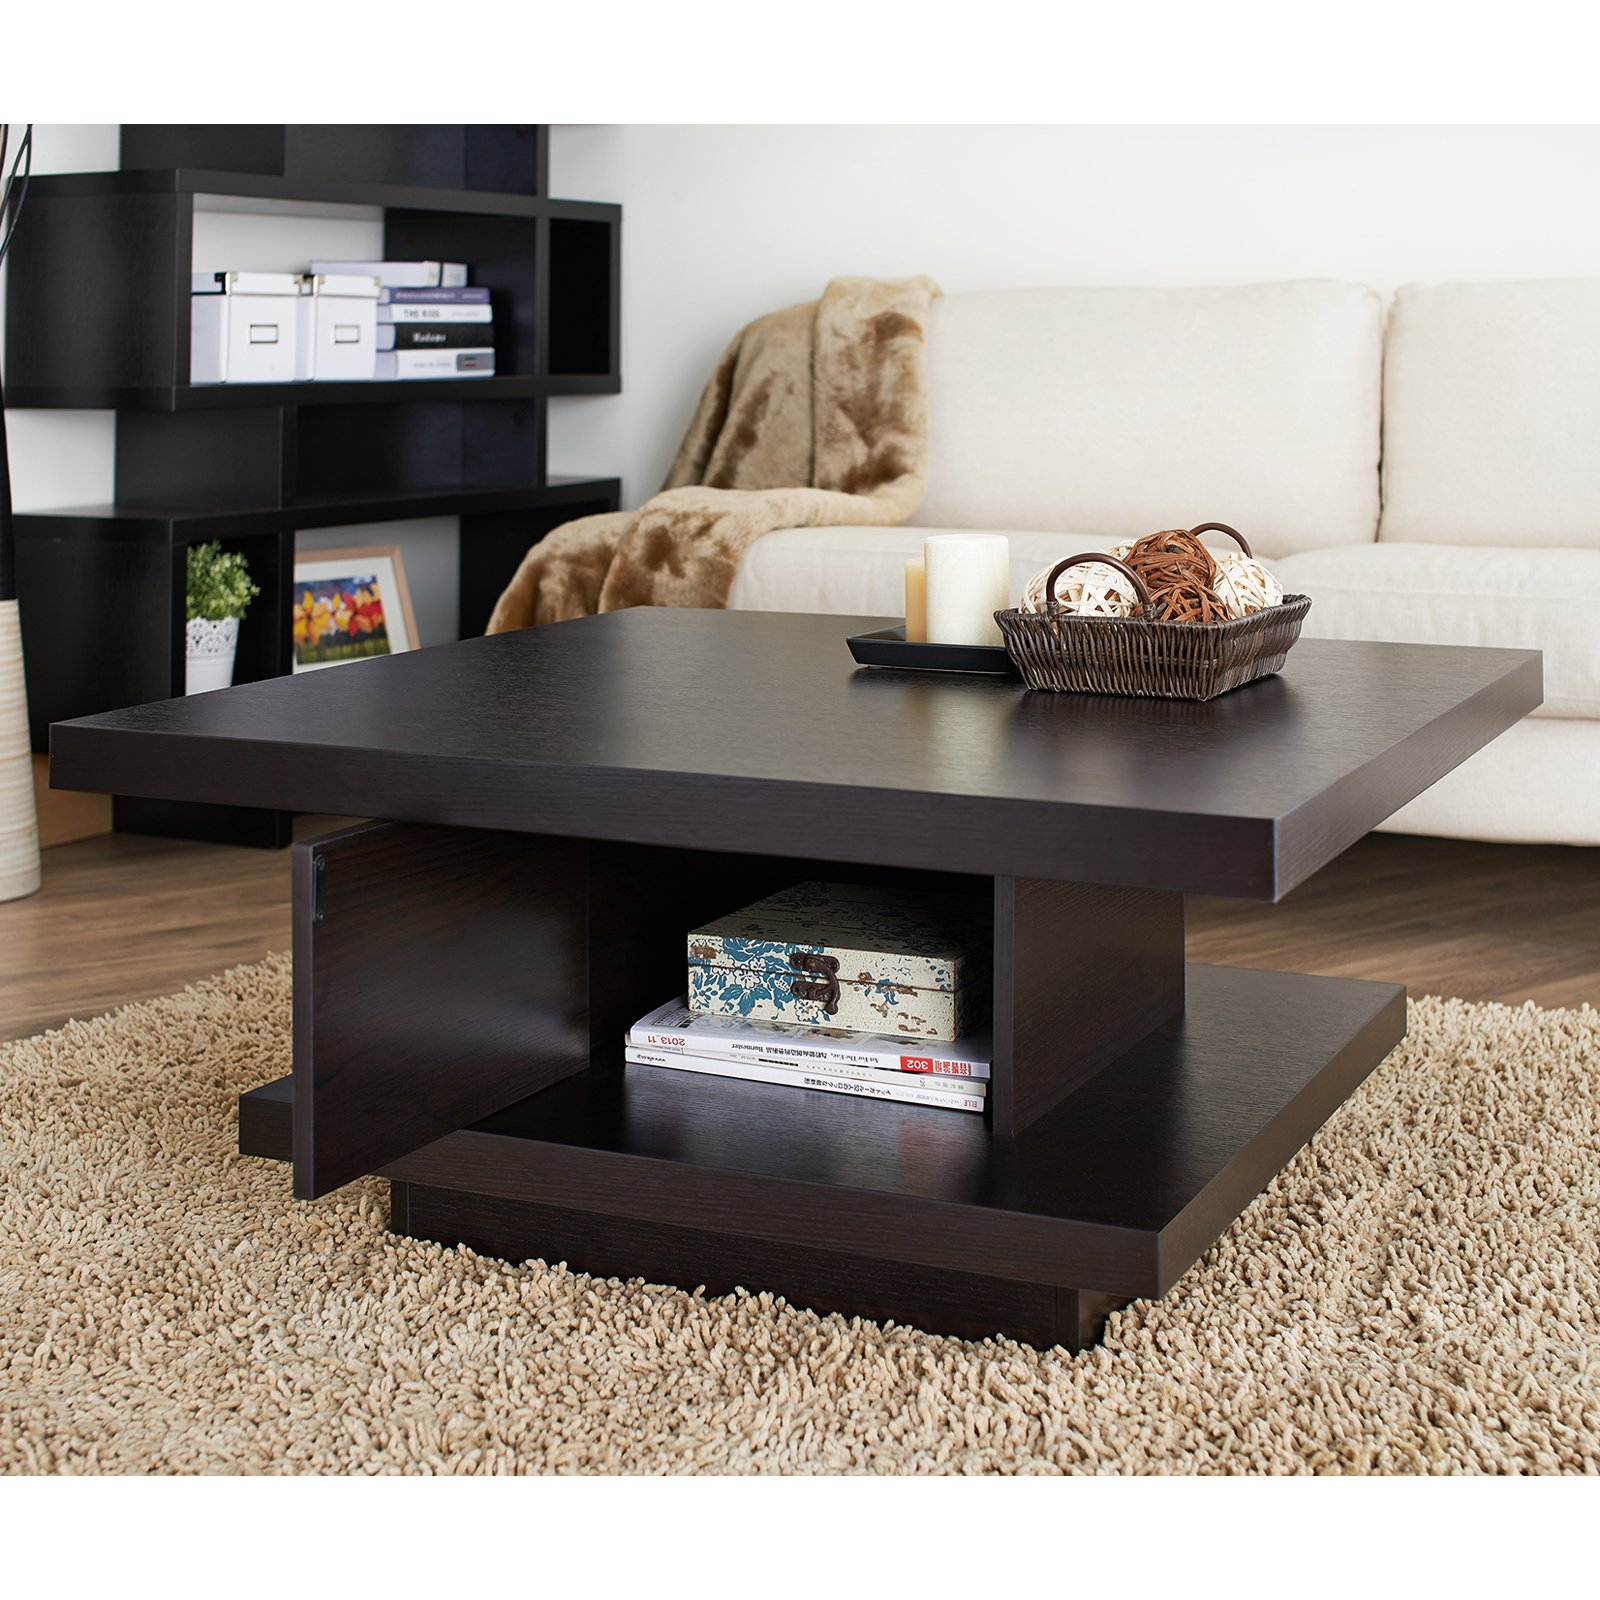 Charmant Furniture Of America Pagoda Coffee Table   Walmart.com